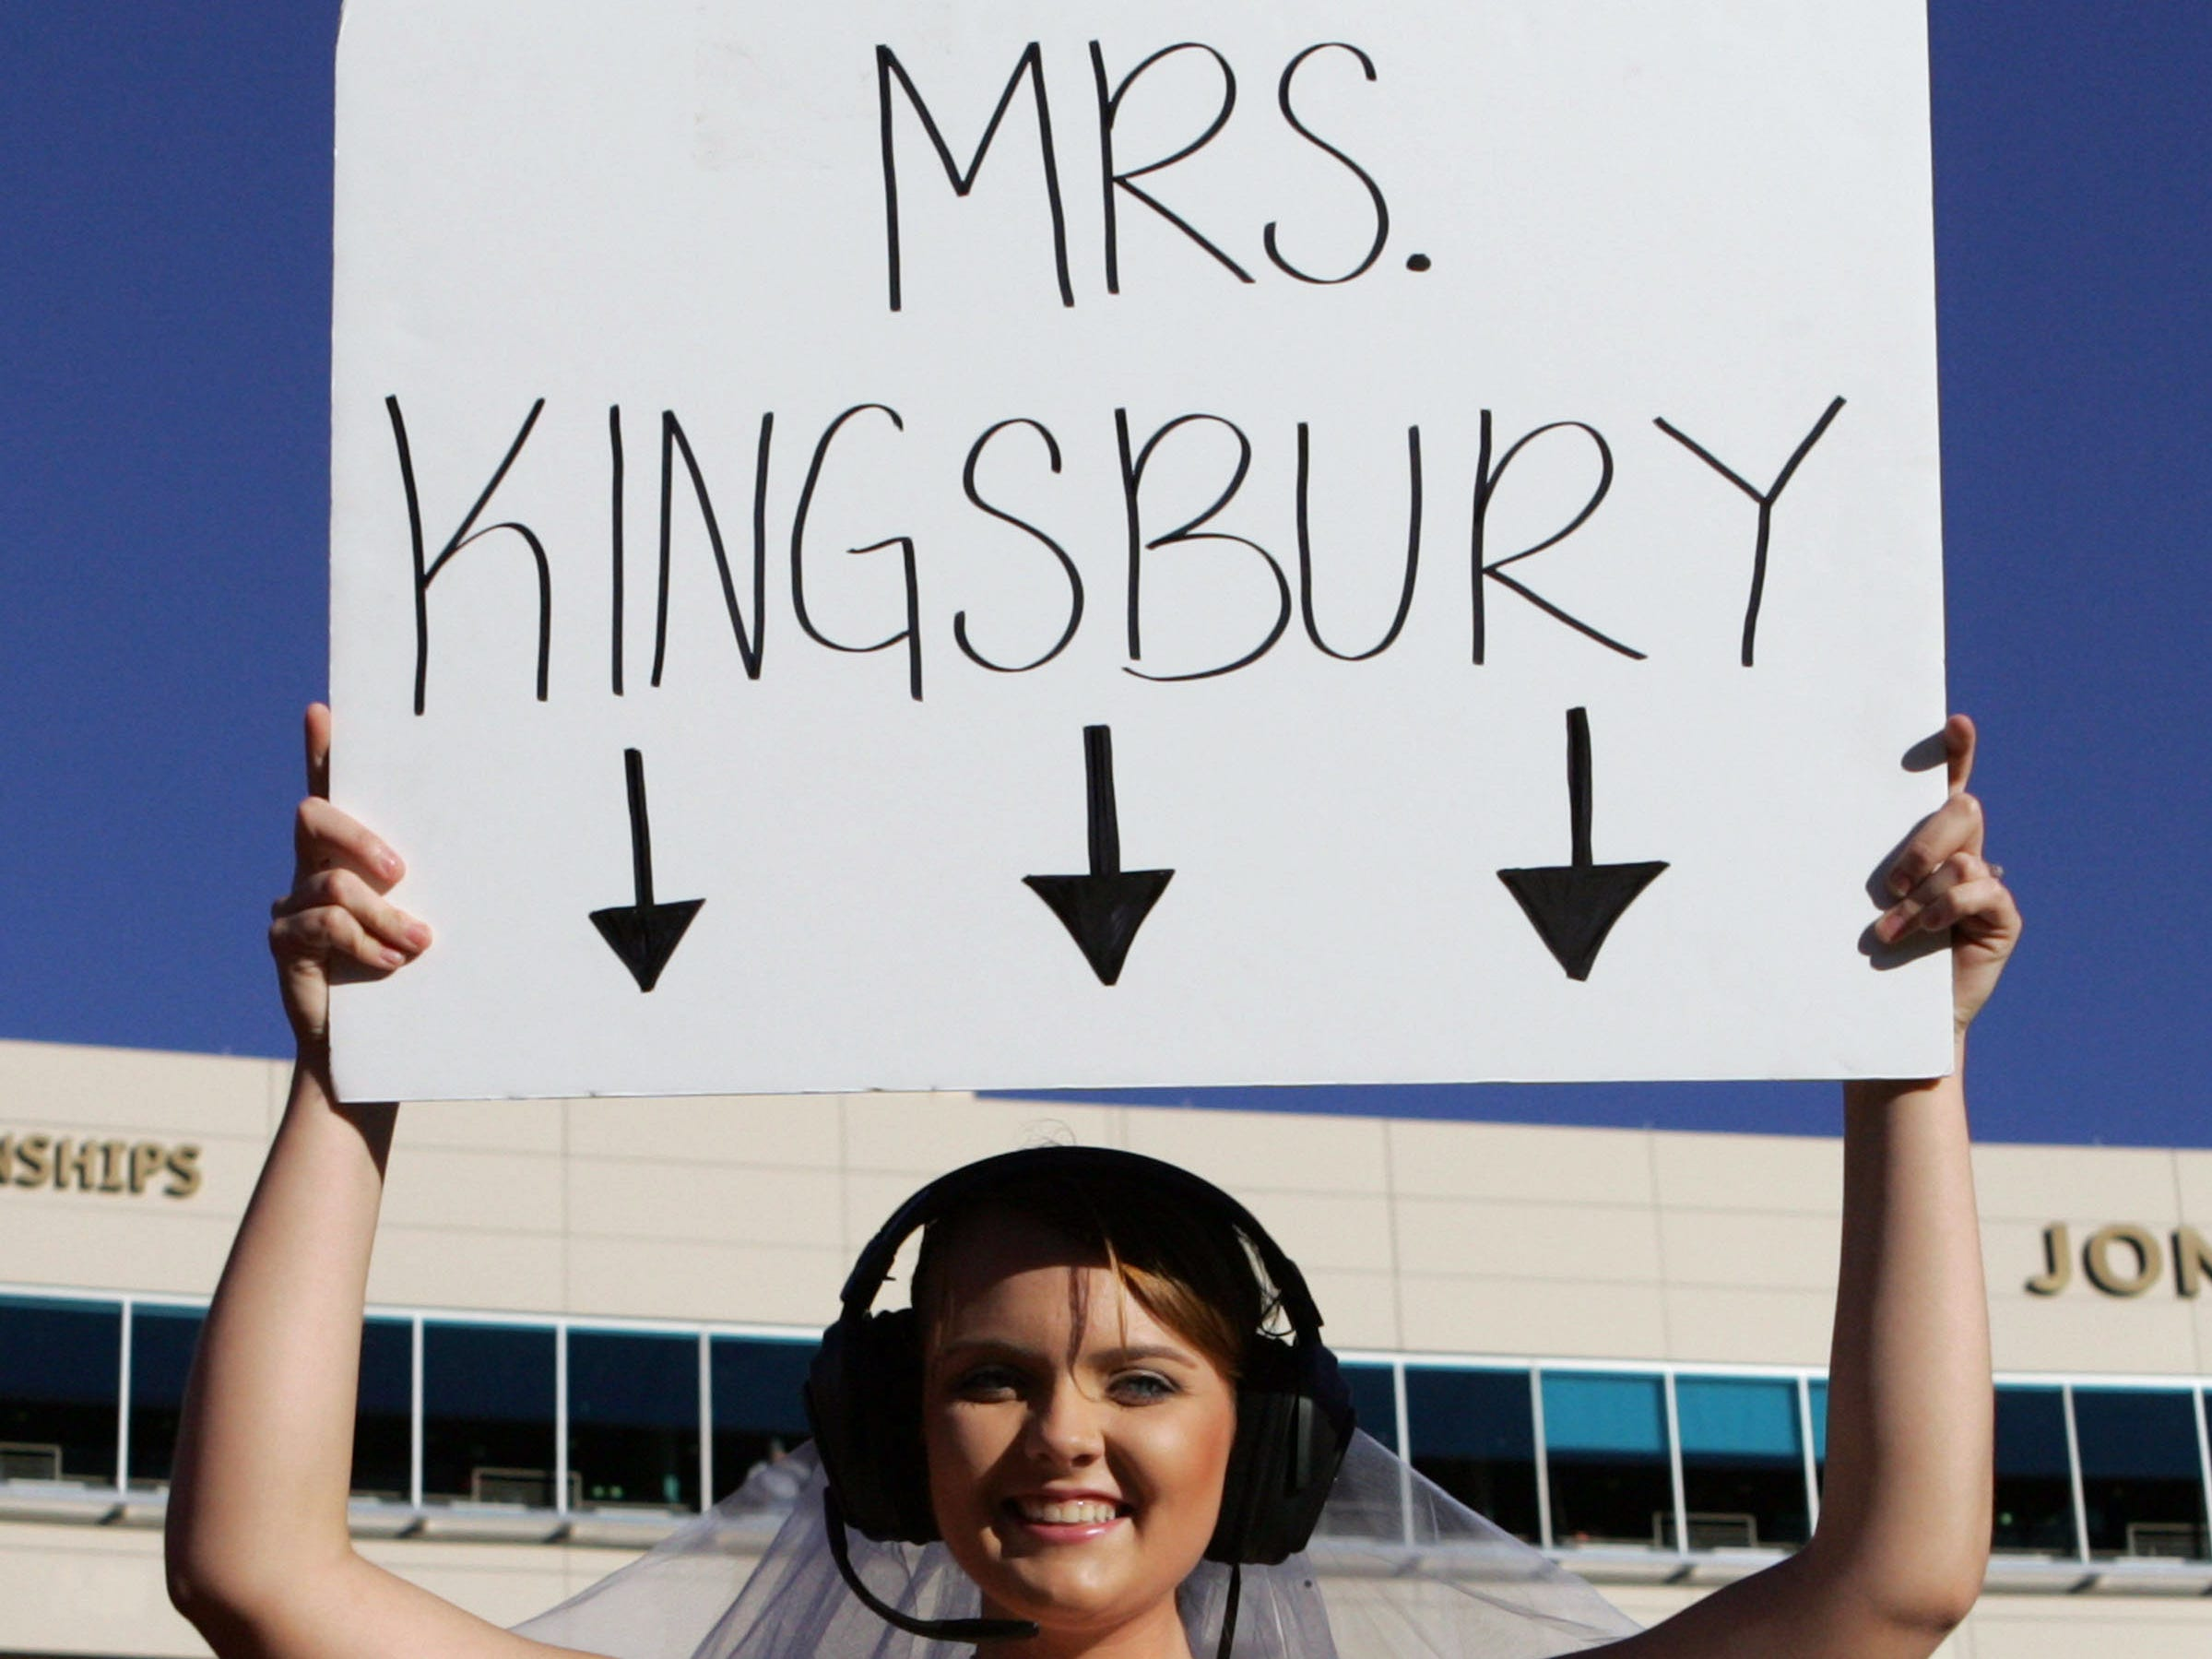 Texas Tech student Ellen Elizabeth Perron shows her support for head coach Kliff Kingsbury in the game against Oklahoma State on Nov. 2, 2013.